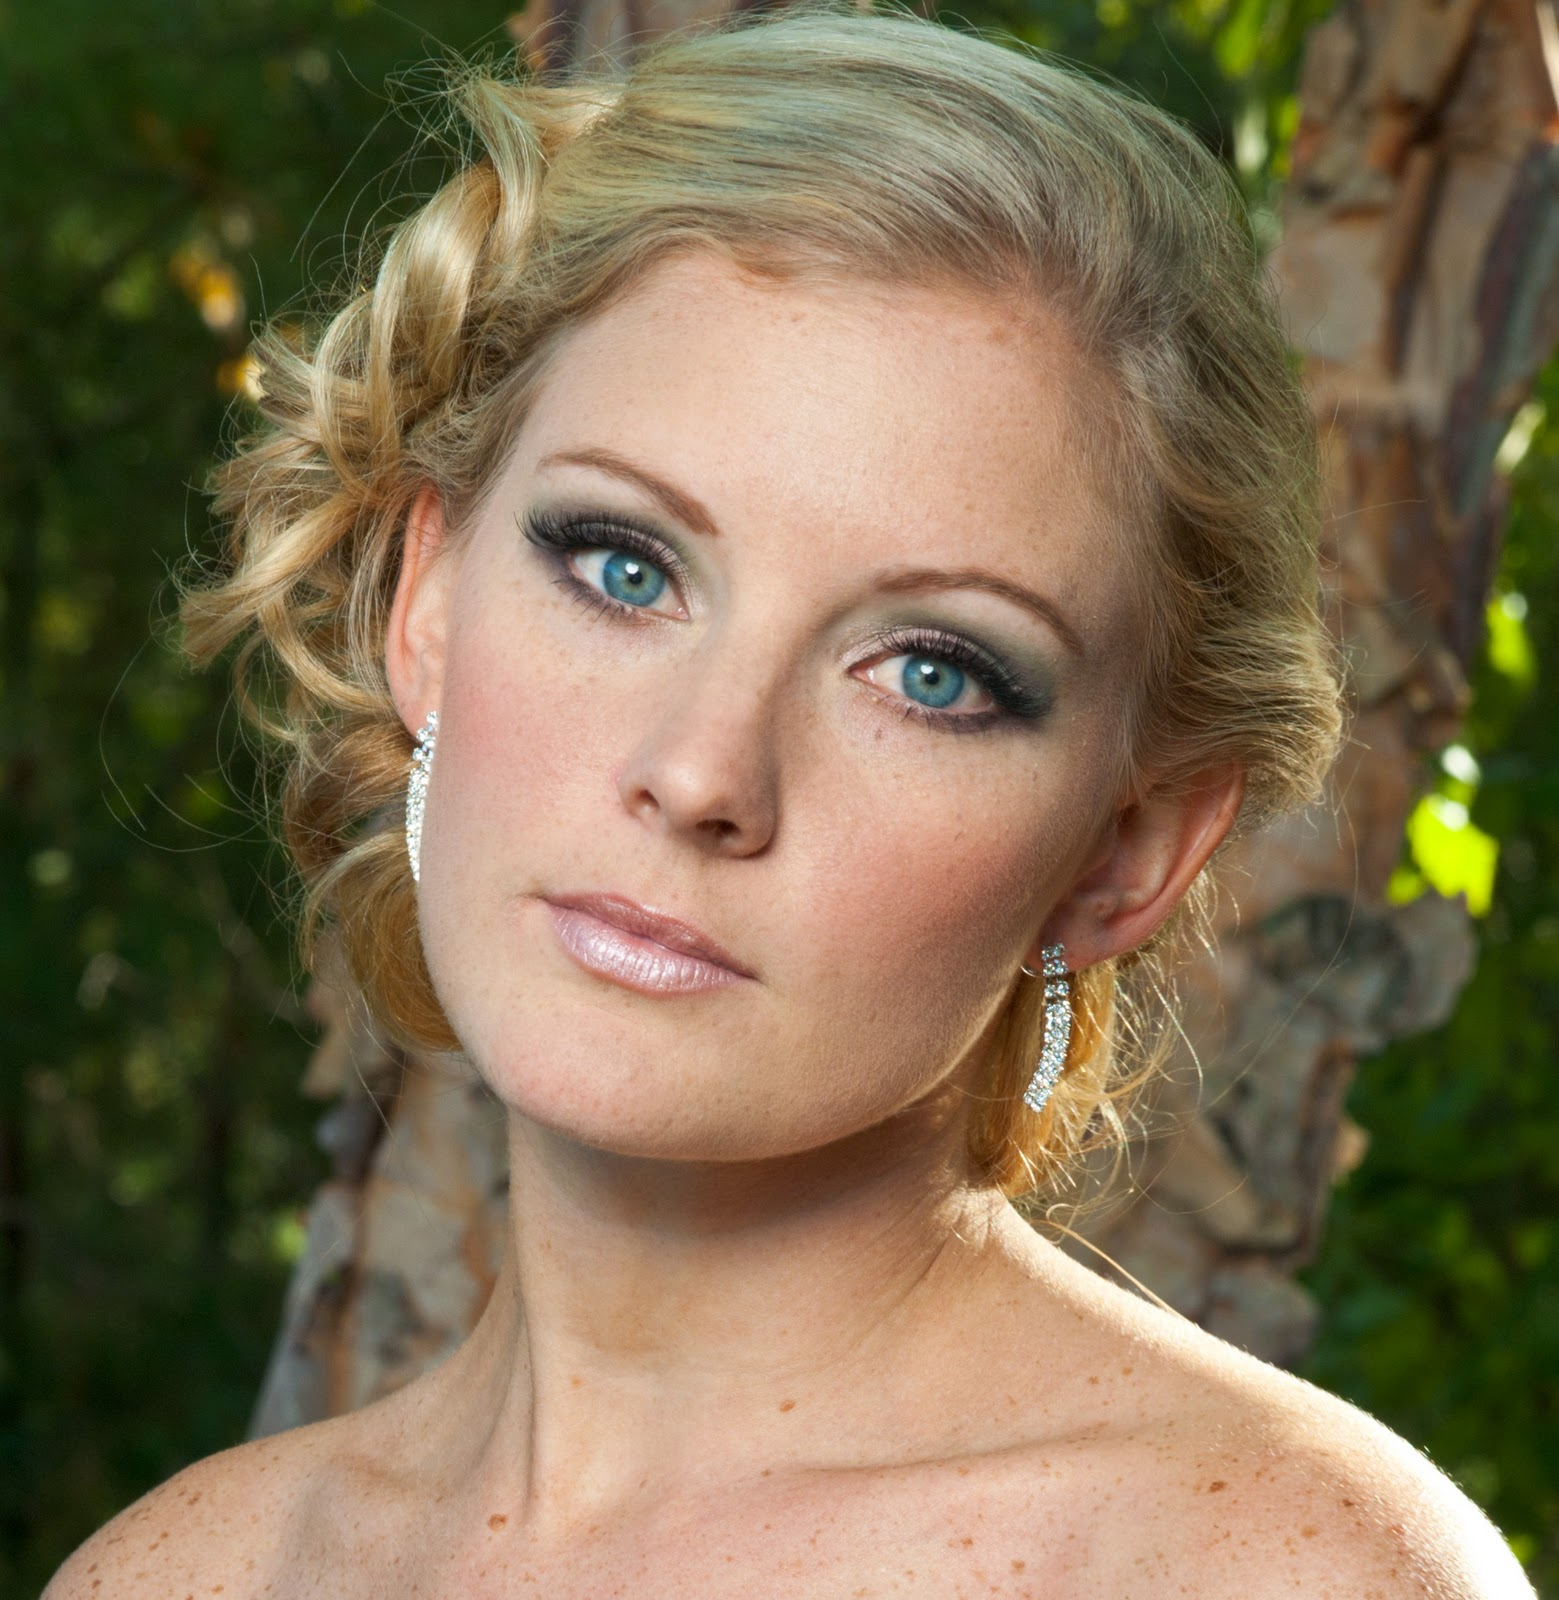 Bridal Makeup For Blue Green Eyes : Makeup Tips For Blue Eyes And Blonde Hair And Fair Skin ...